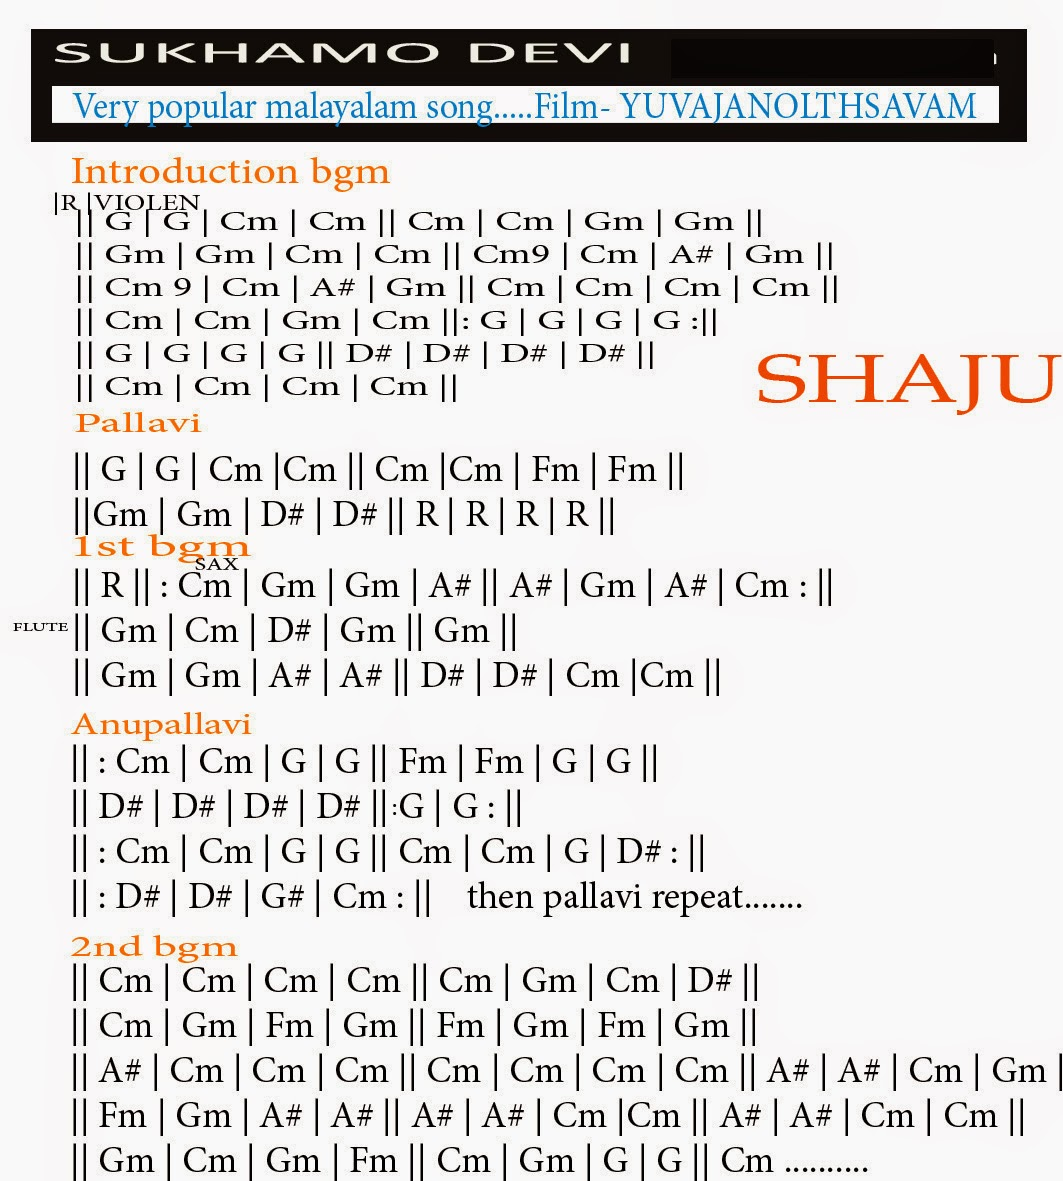 Shajus Guitar Lessons Chords 4 Live Performers